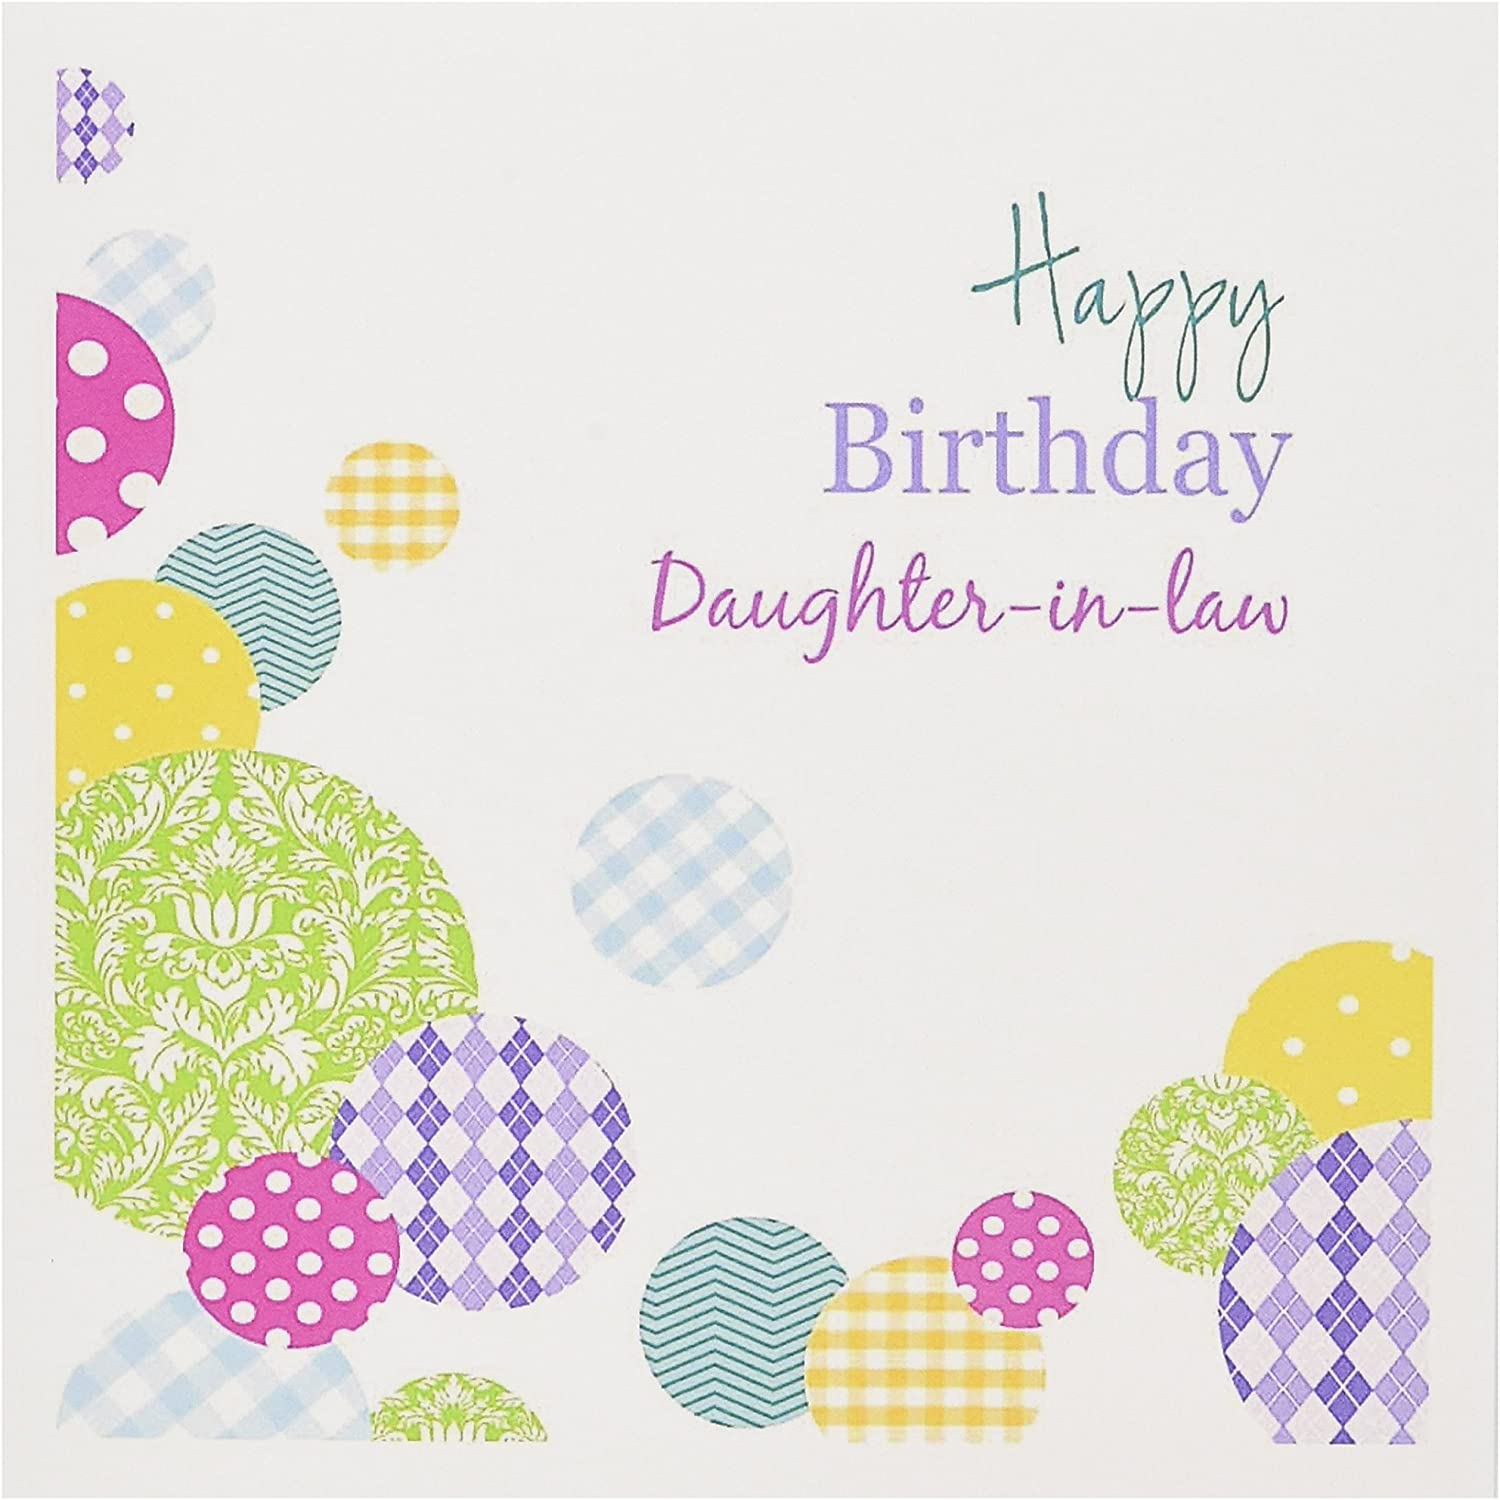 Happy Birthday Daughter In Law Colorful Dots On White Greeting Card 6 X 6 Inches Single Gc 165133 5 Walmart Canada